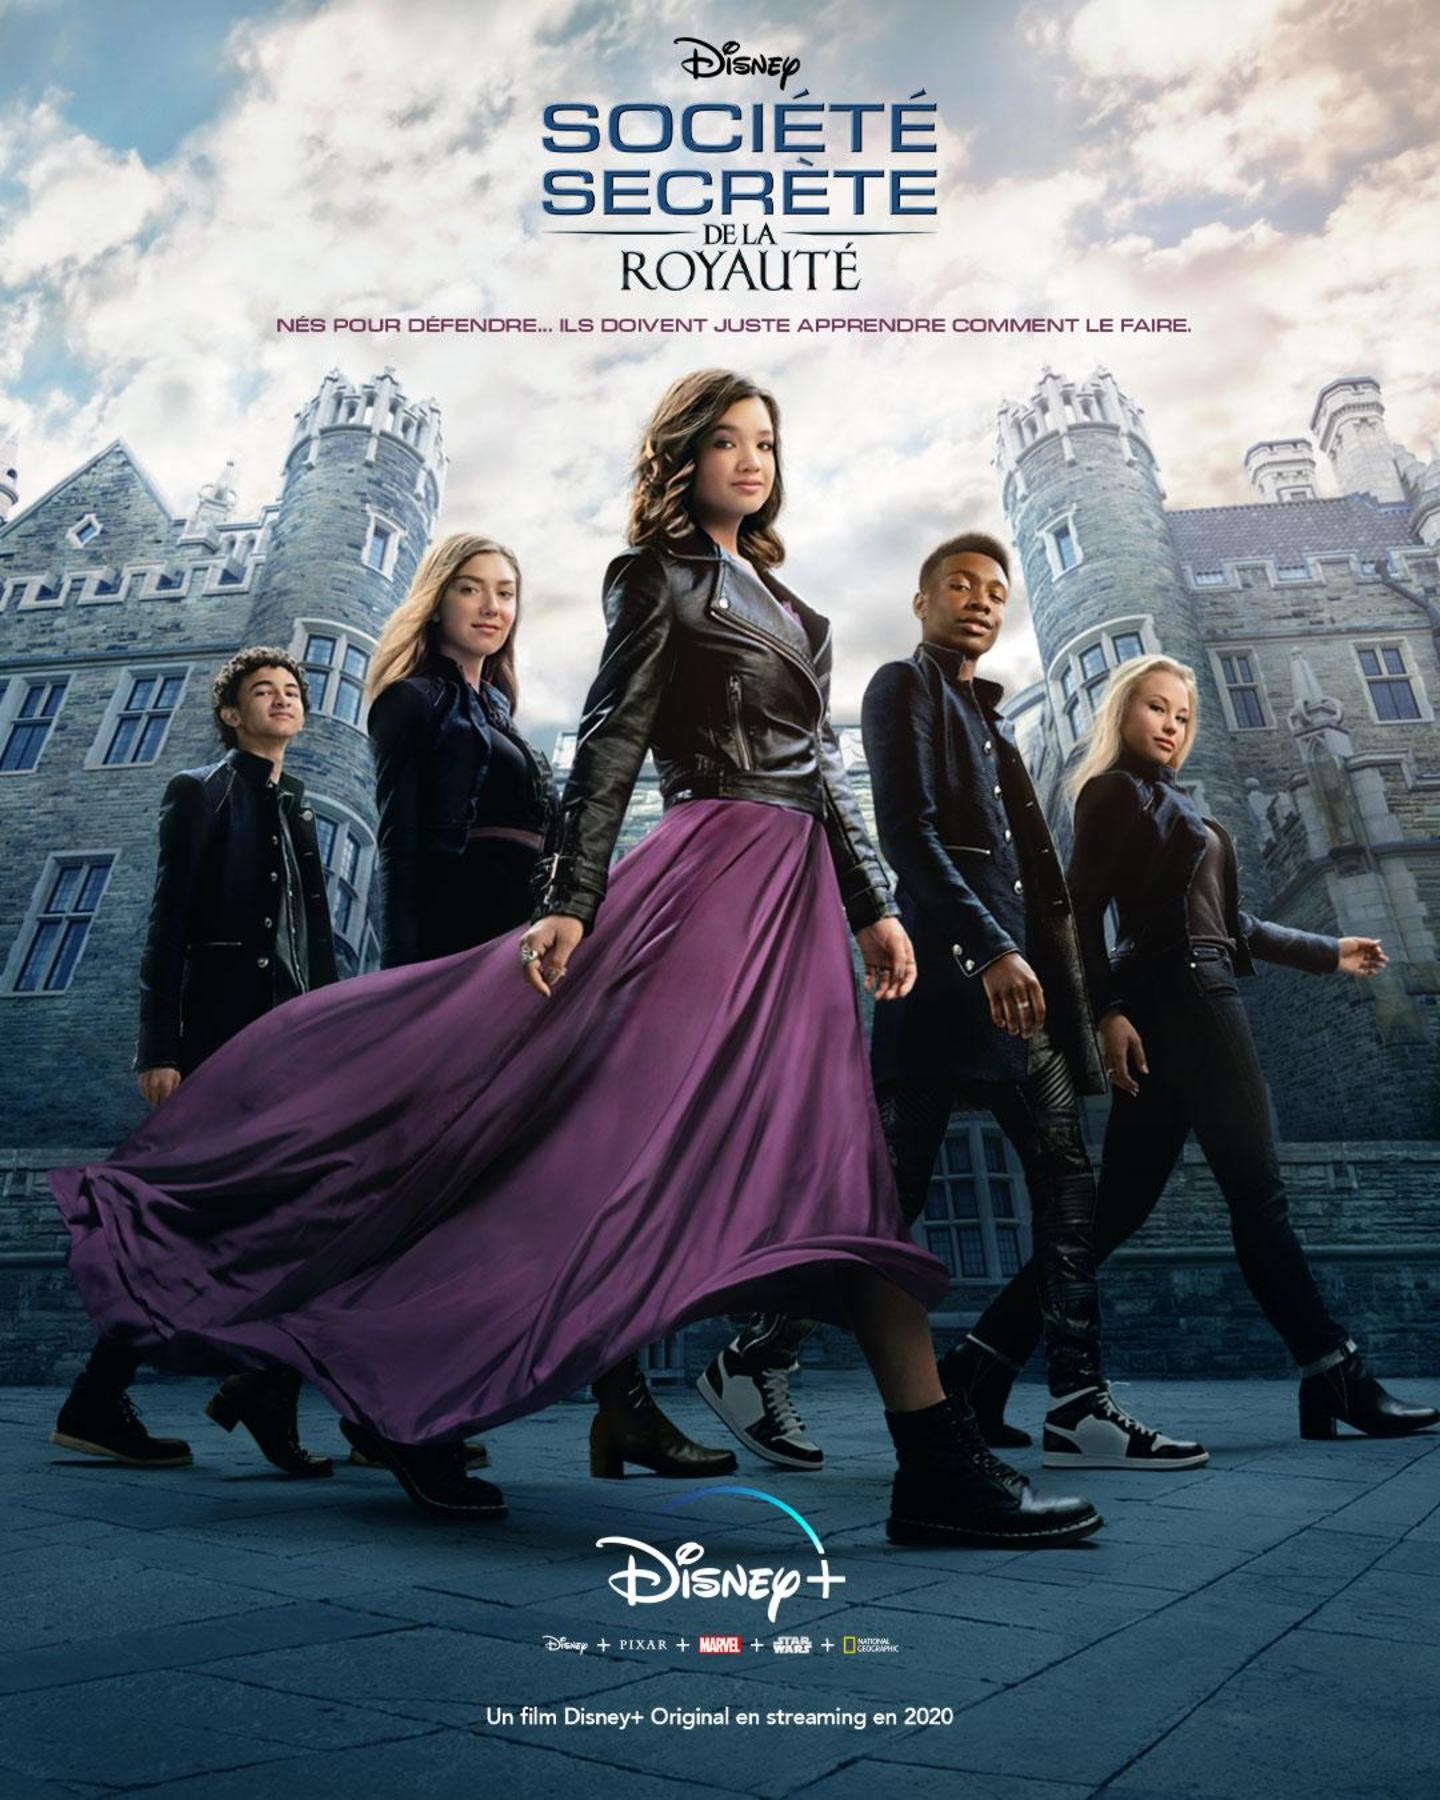 affiche poster société secrète royaute society second born royals disney plus